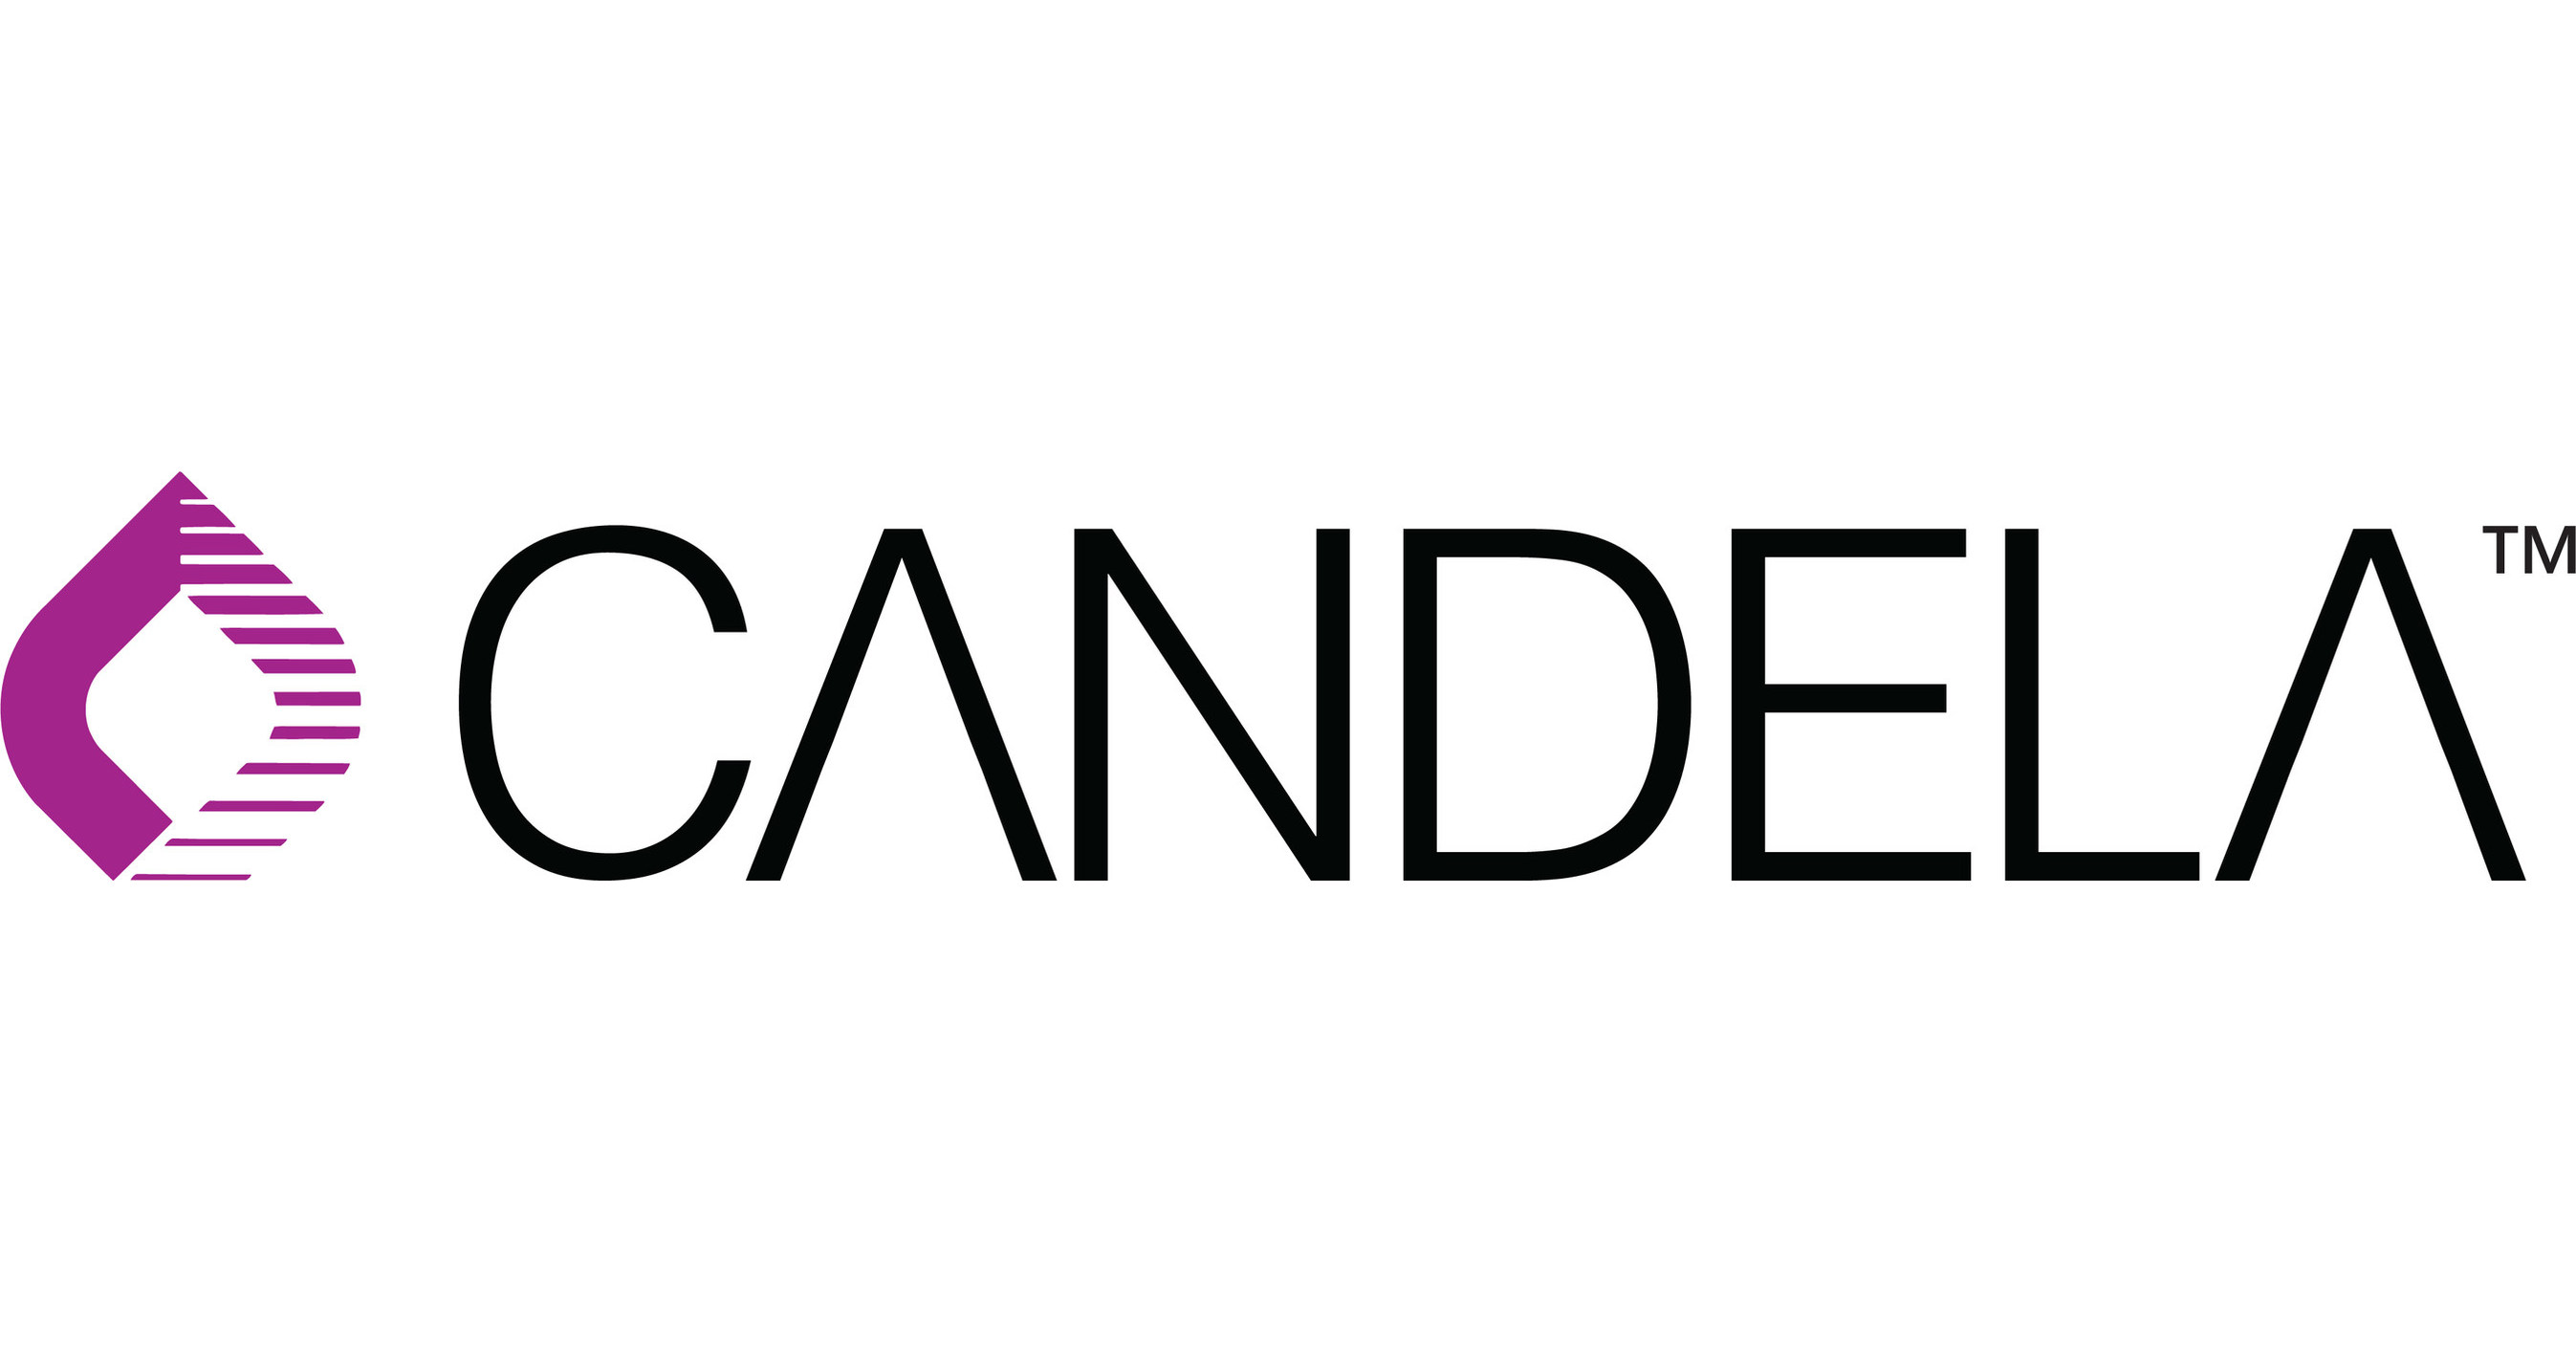 Syneron Candela Announces Updates In Patent Infringement Cases